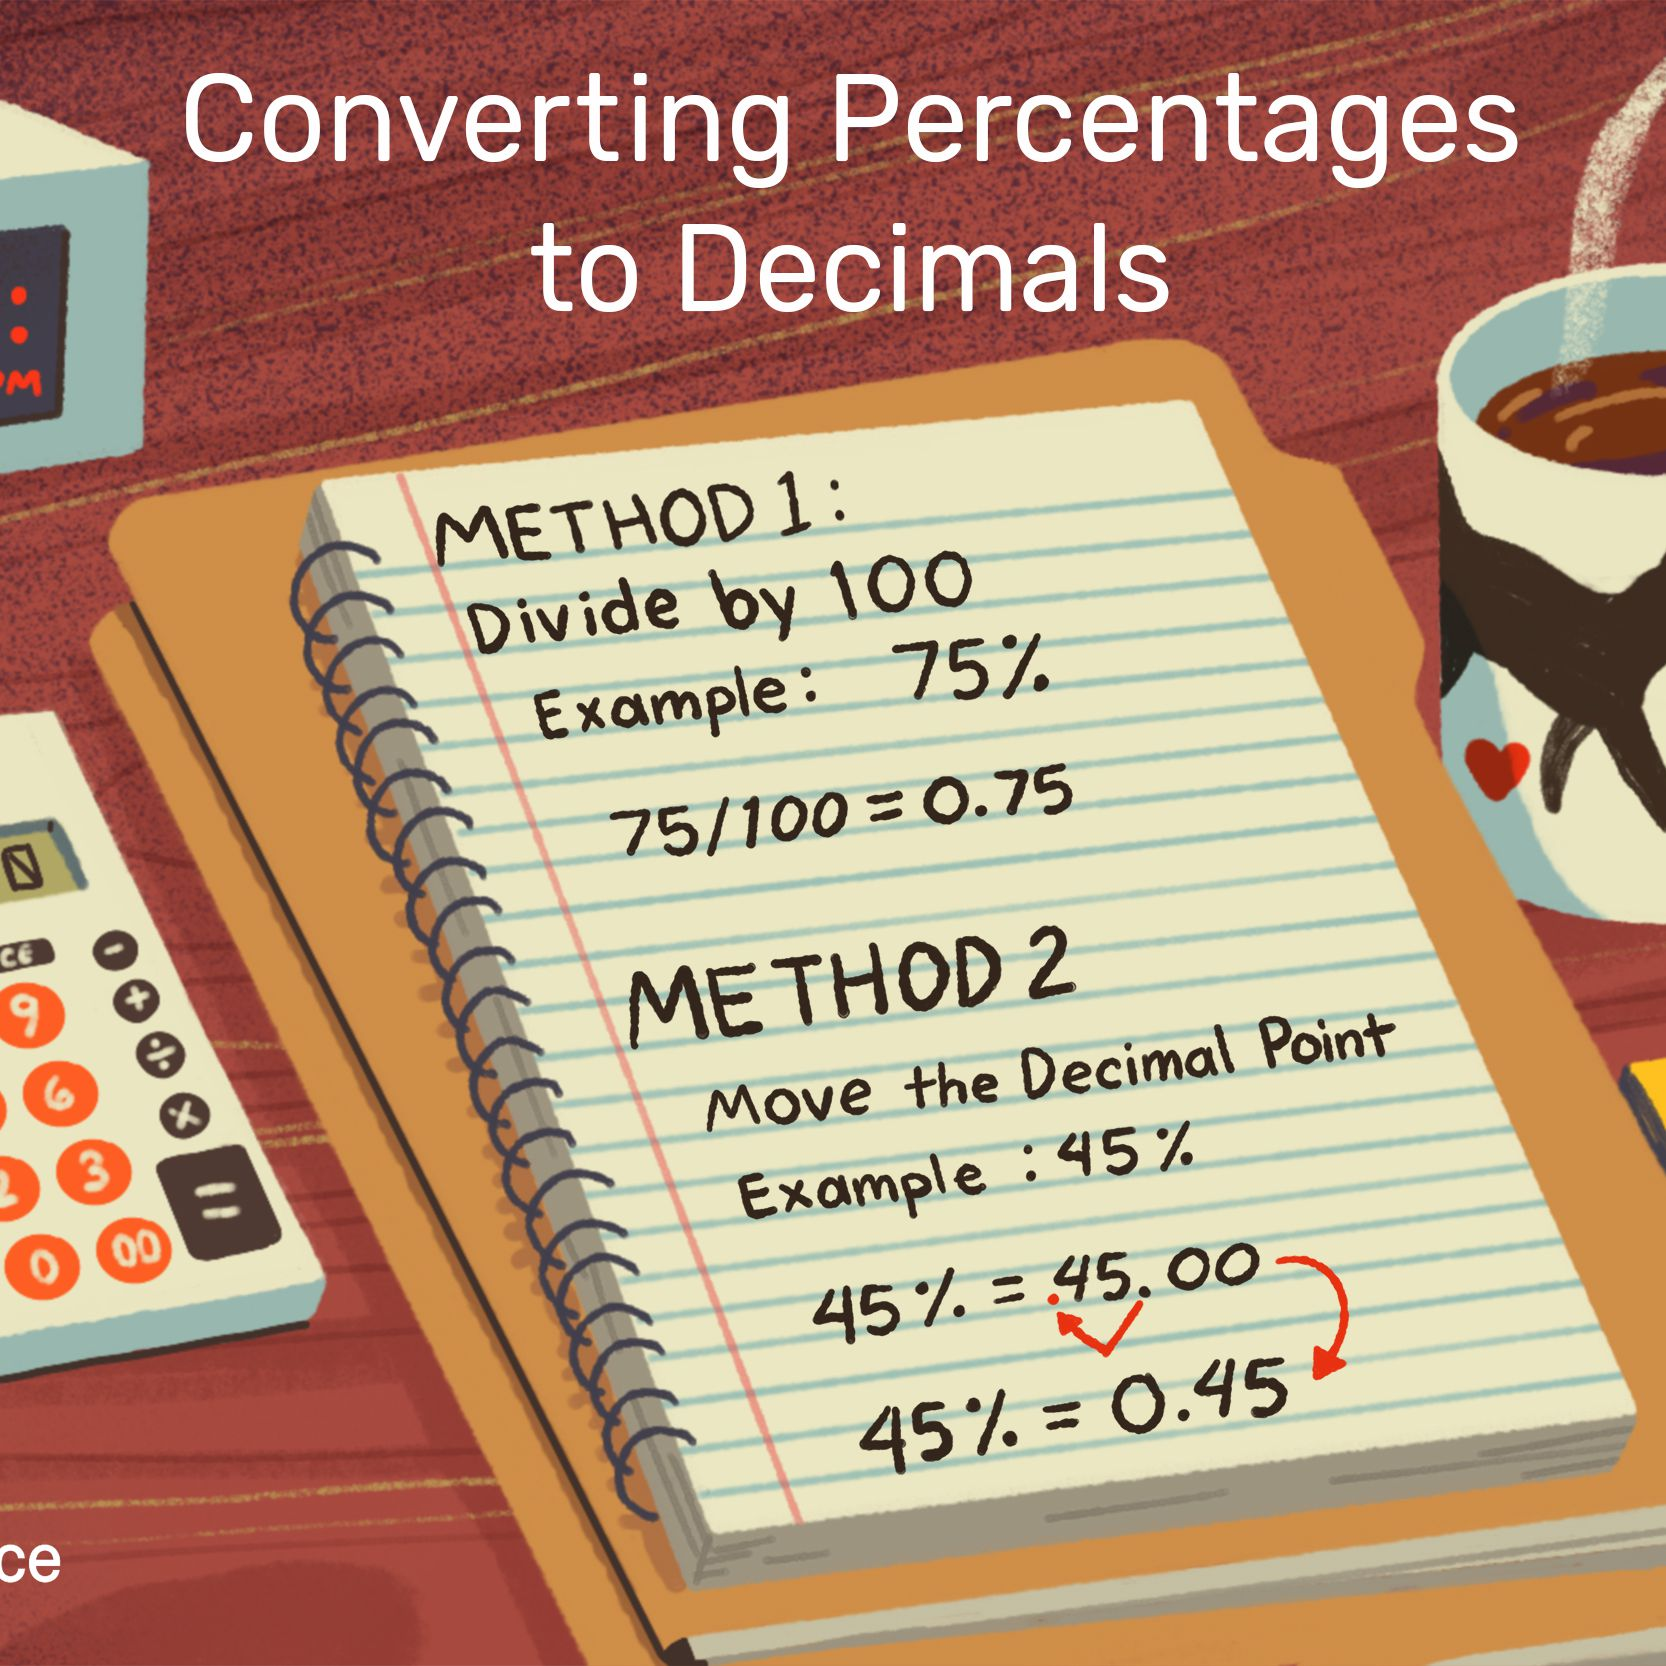 How to Convert Percentages to Decimals